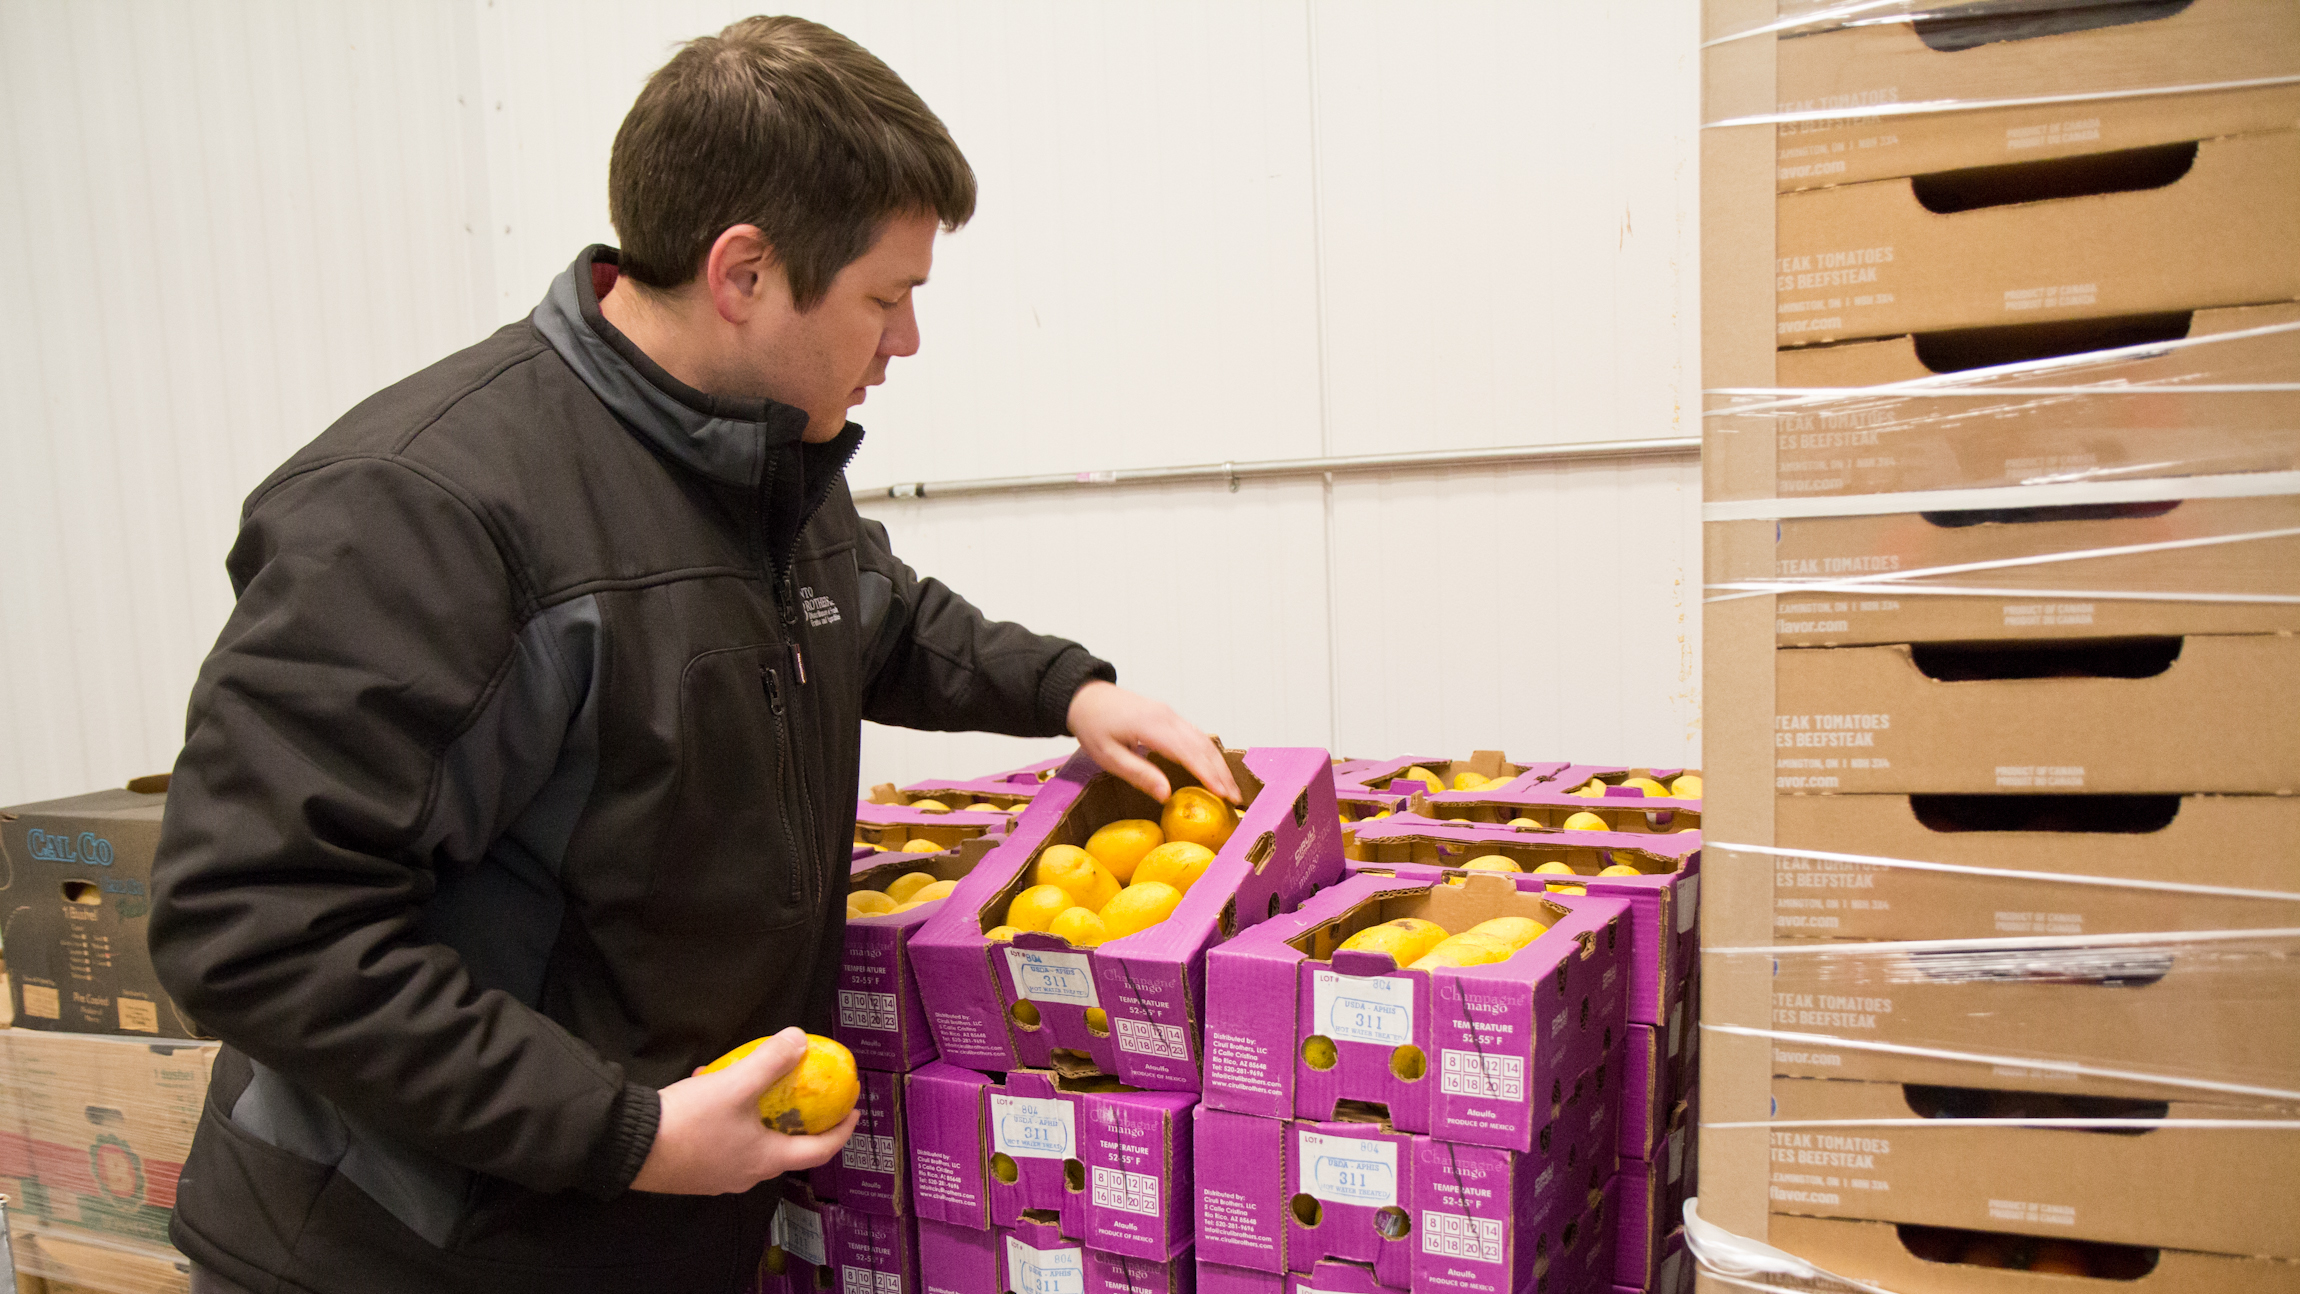 Could a border shutdown affect produce prices in Philly area